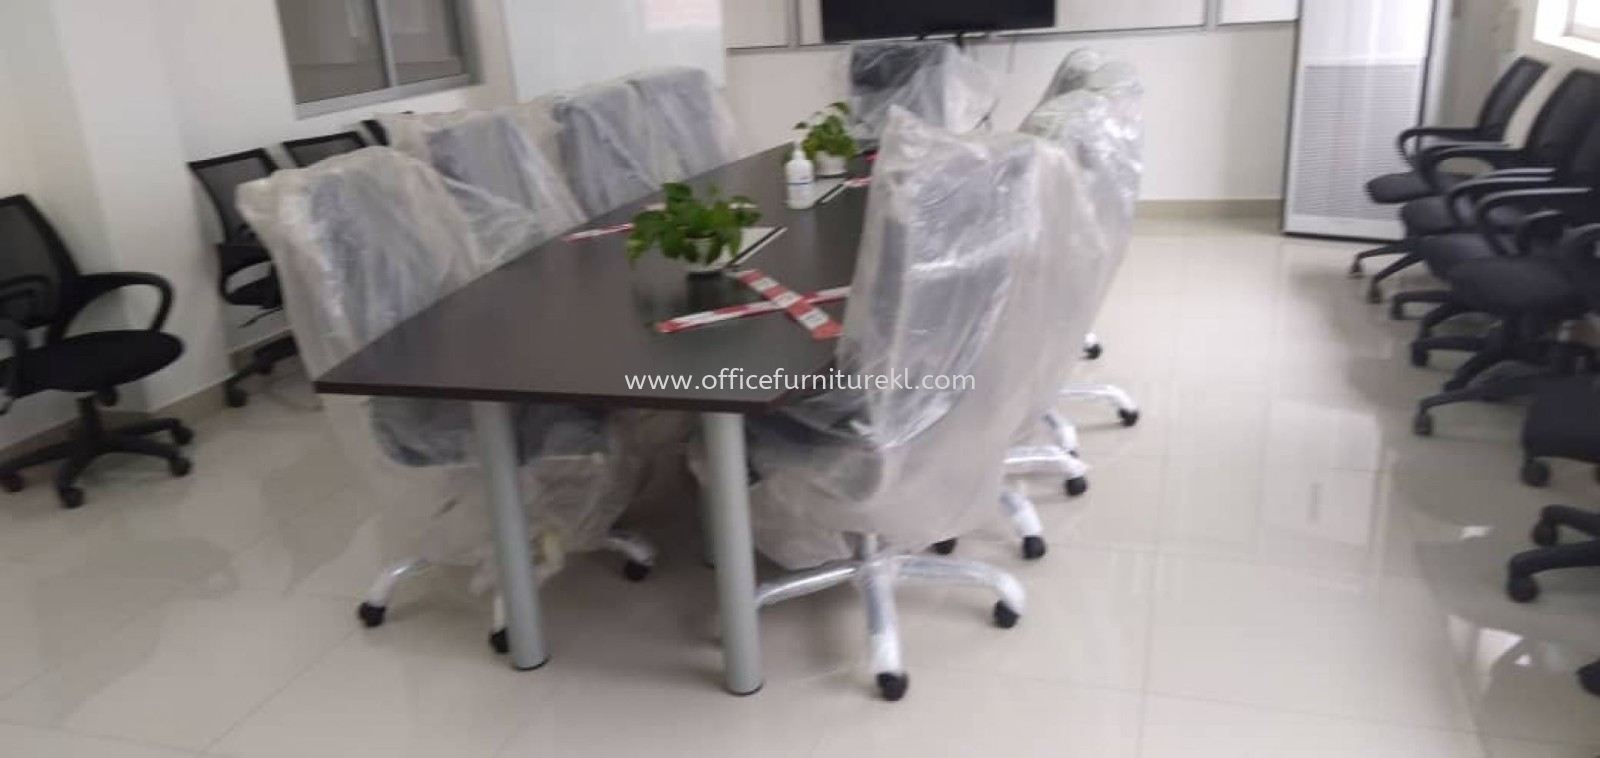 FREE DELIVERY & INSTALLATION QAMAR MEETING OFFICE TABLE AQBC 30 l MANJAR EXECUTIVE OFFICE CHAIR l OFFICE FURNITURE l SHAH ALAM l SELANGOR l TOP 10 BEST RECOMMEND